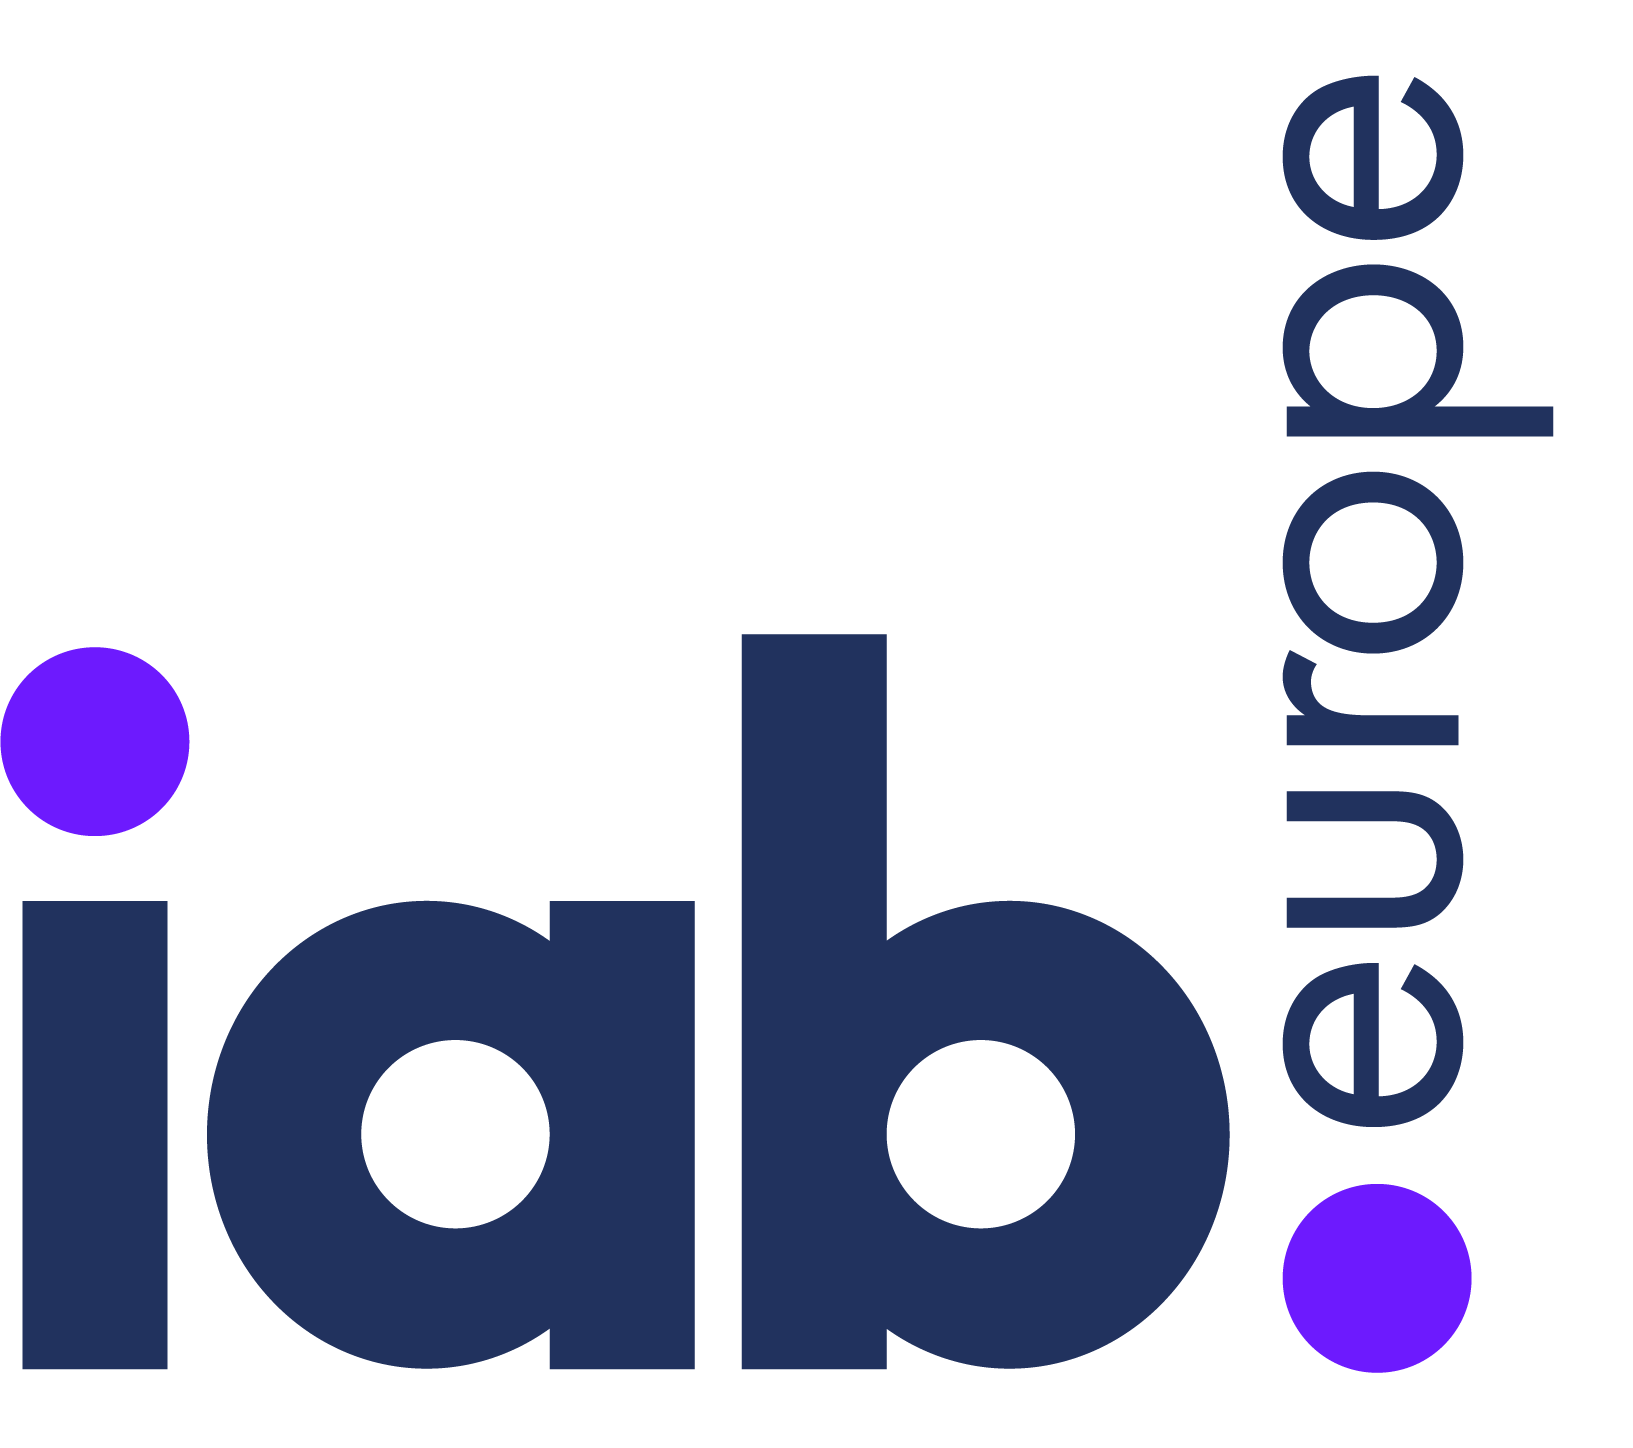 IAB Europe Refutes Criticisms Of The Transparency and Consent Framework